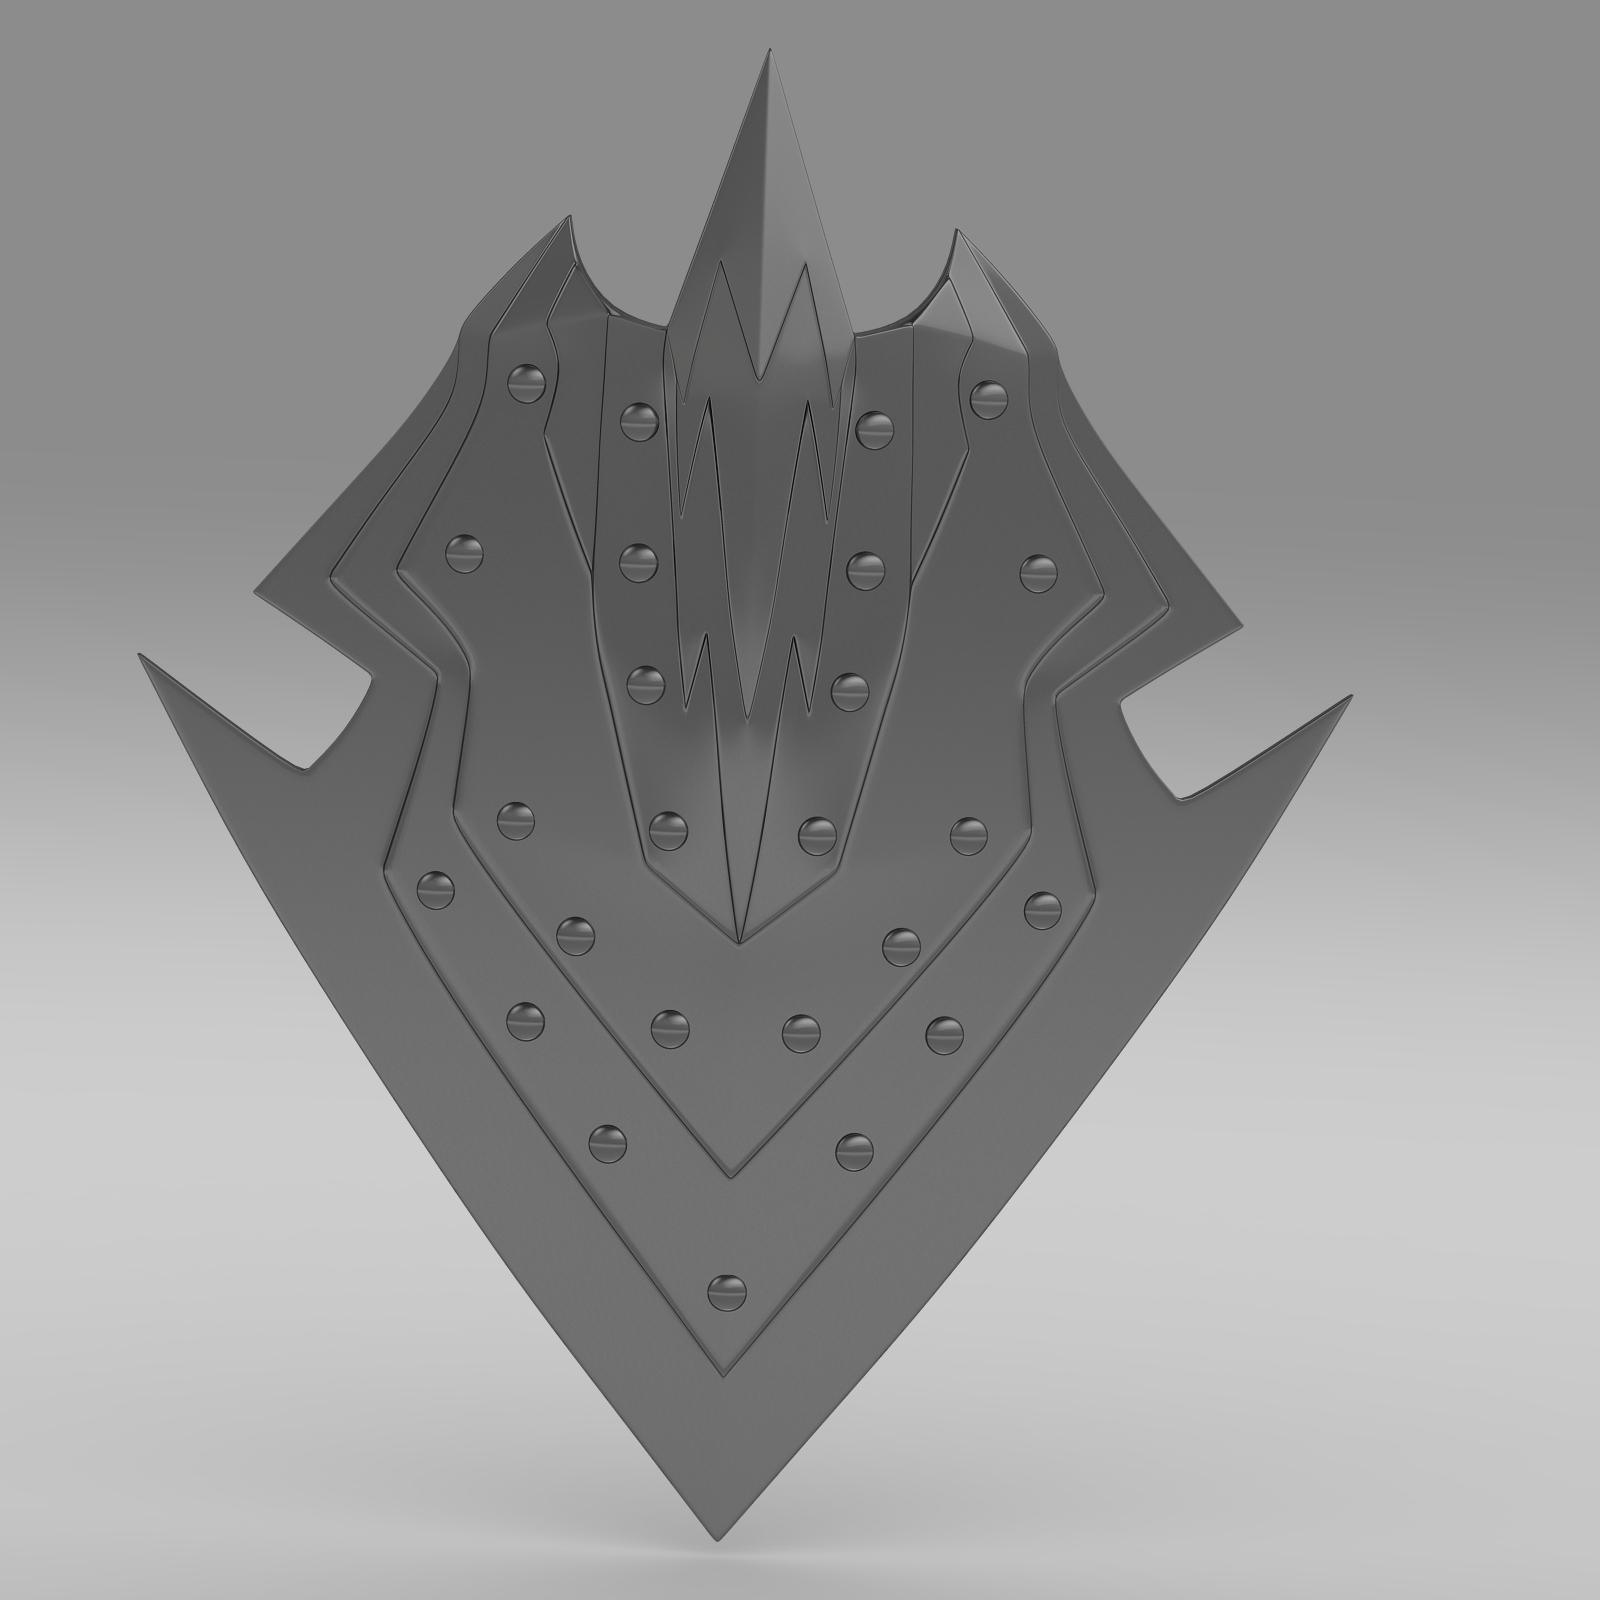 orcish shield 3d model 3ds fbx c4d lwo ma mb hrc xsi obj 223648